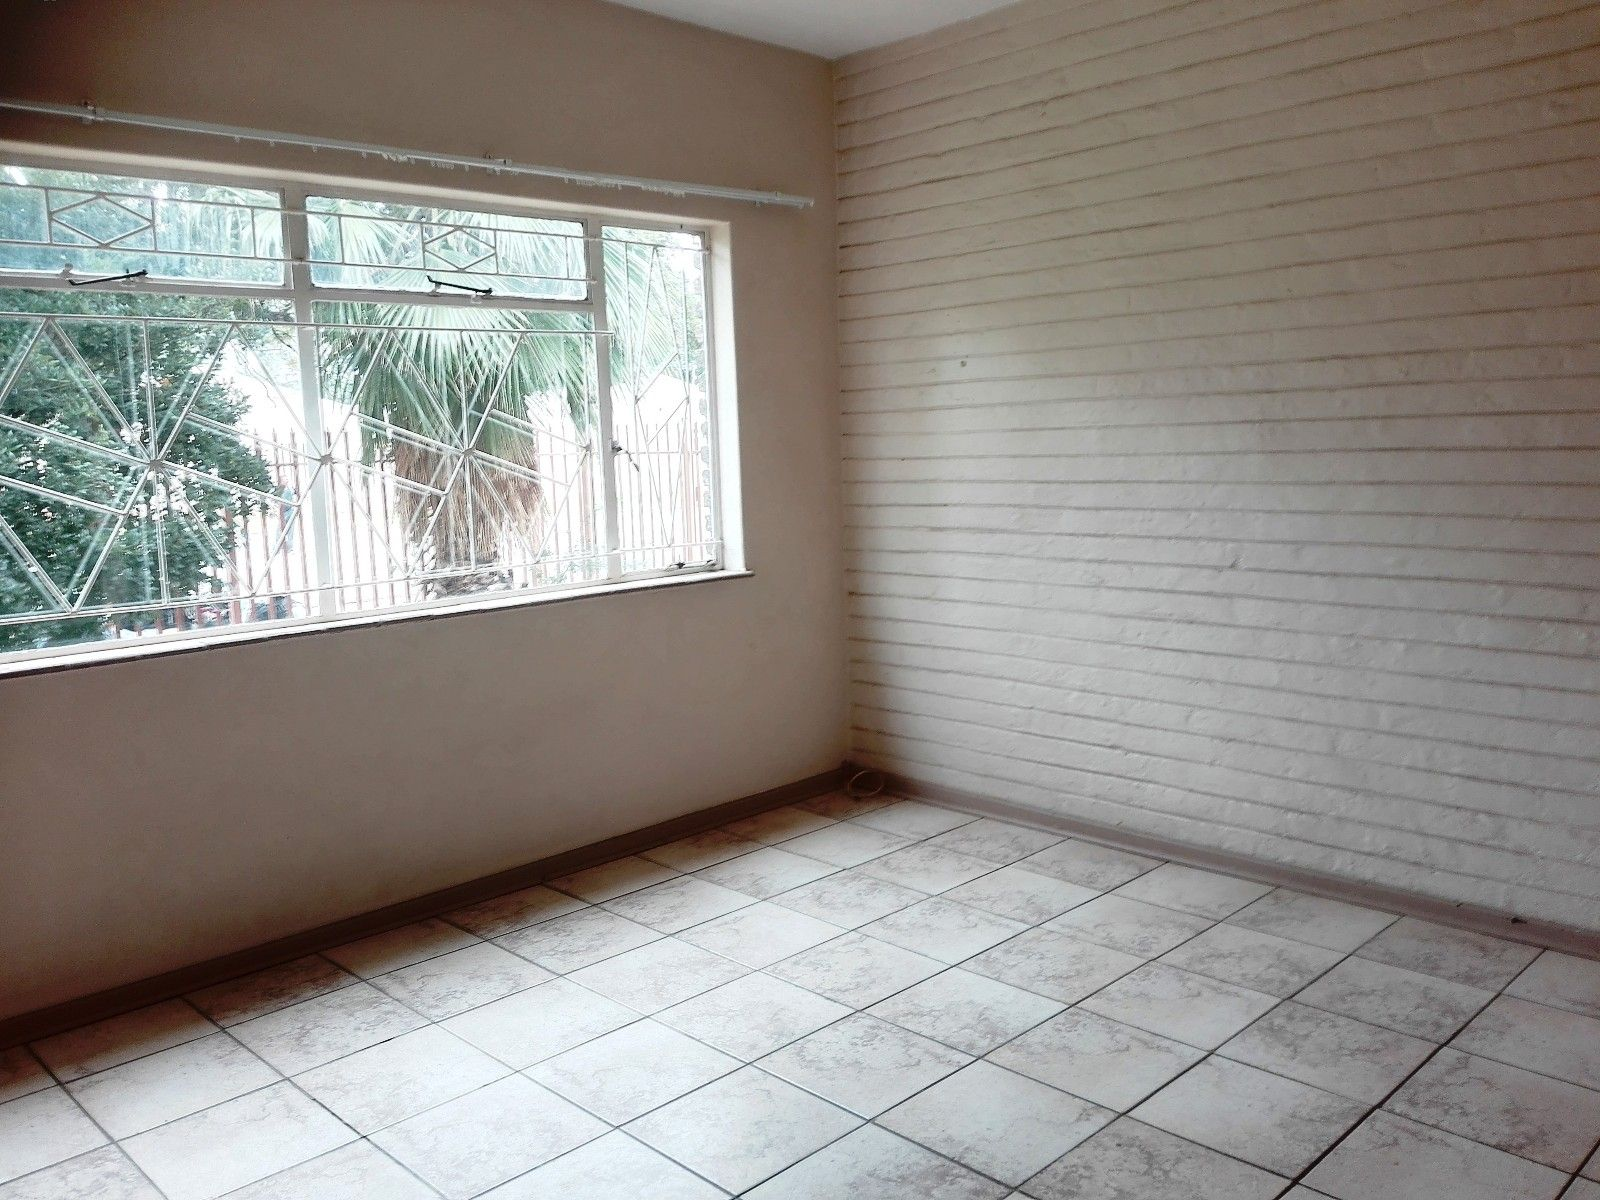 Bult West property for sale. Ref No: 13466336. Picture no 16